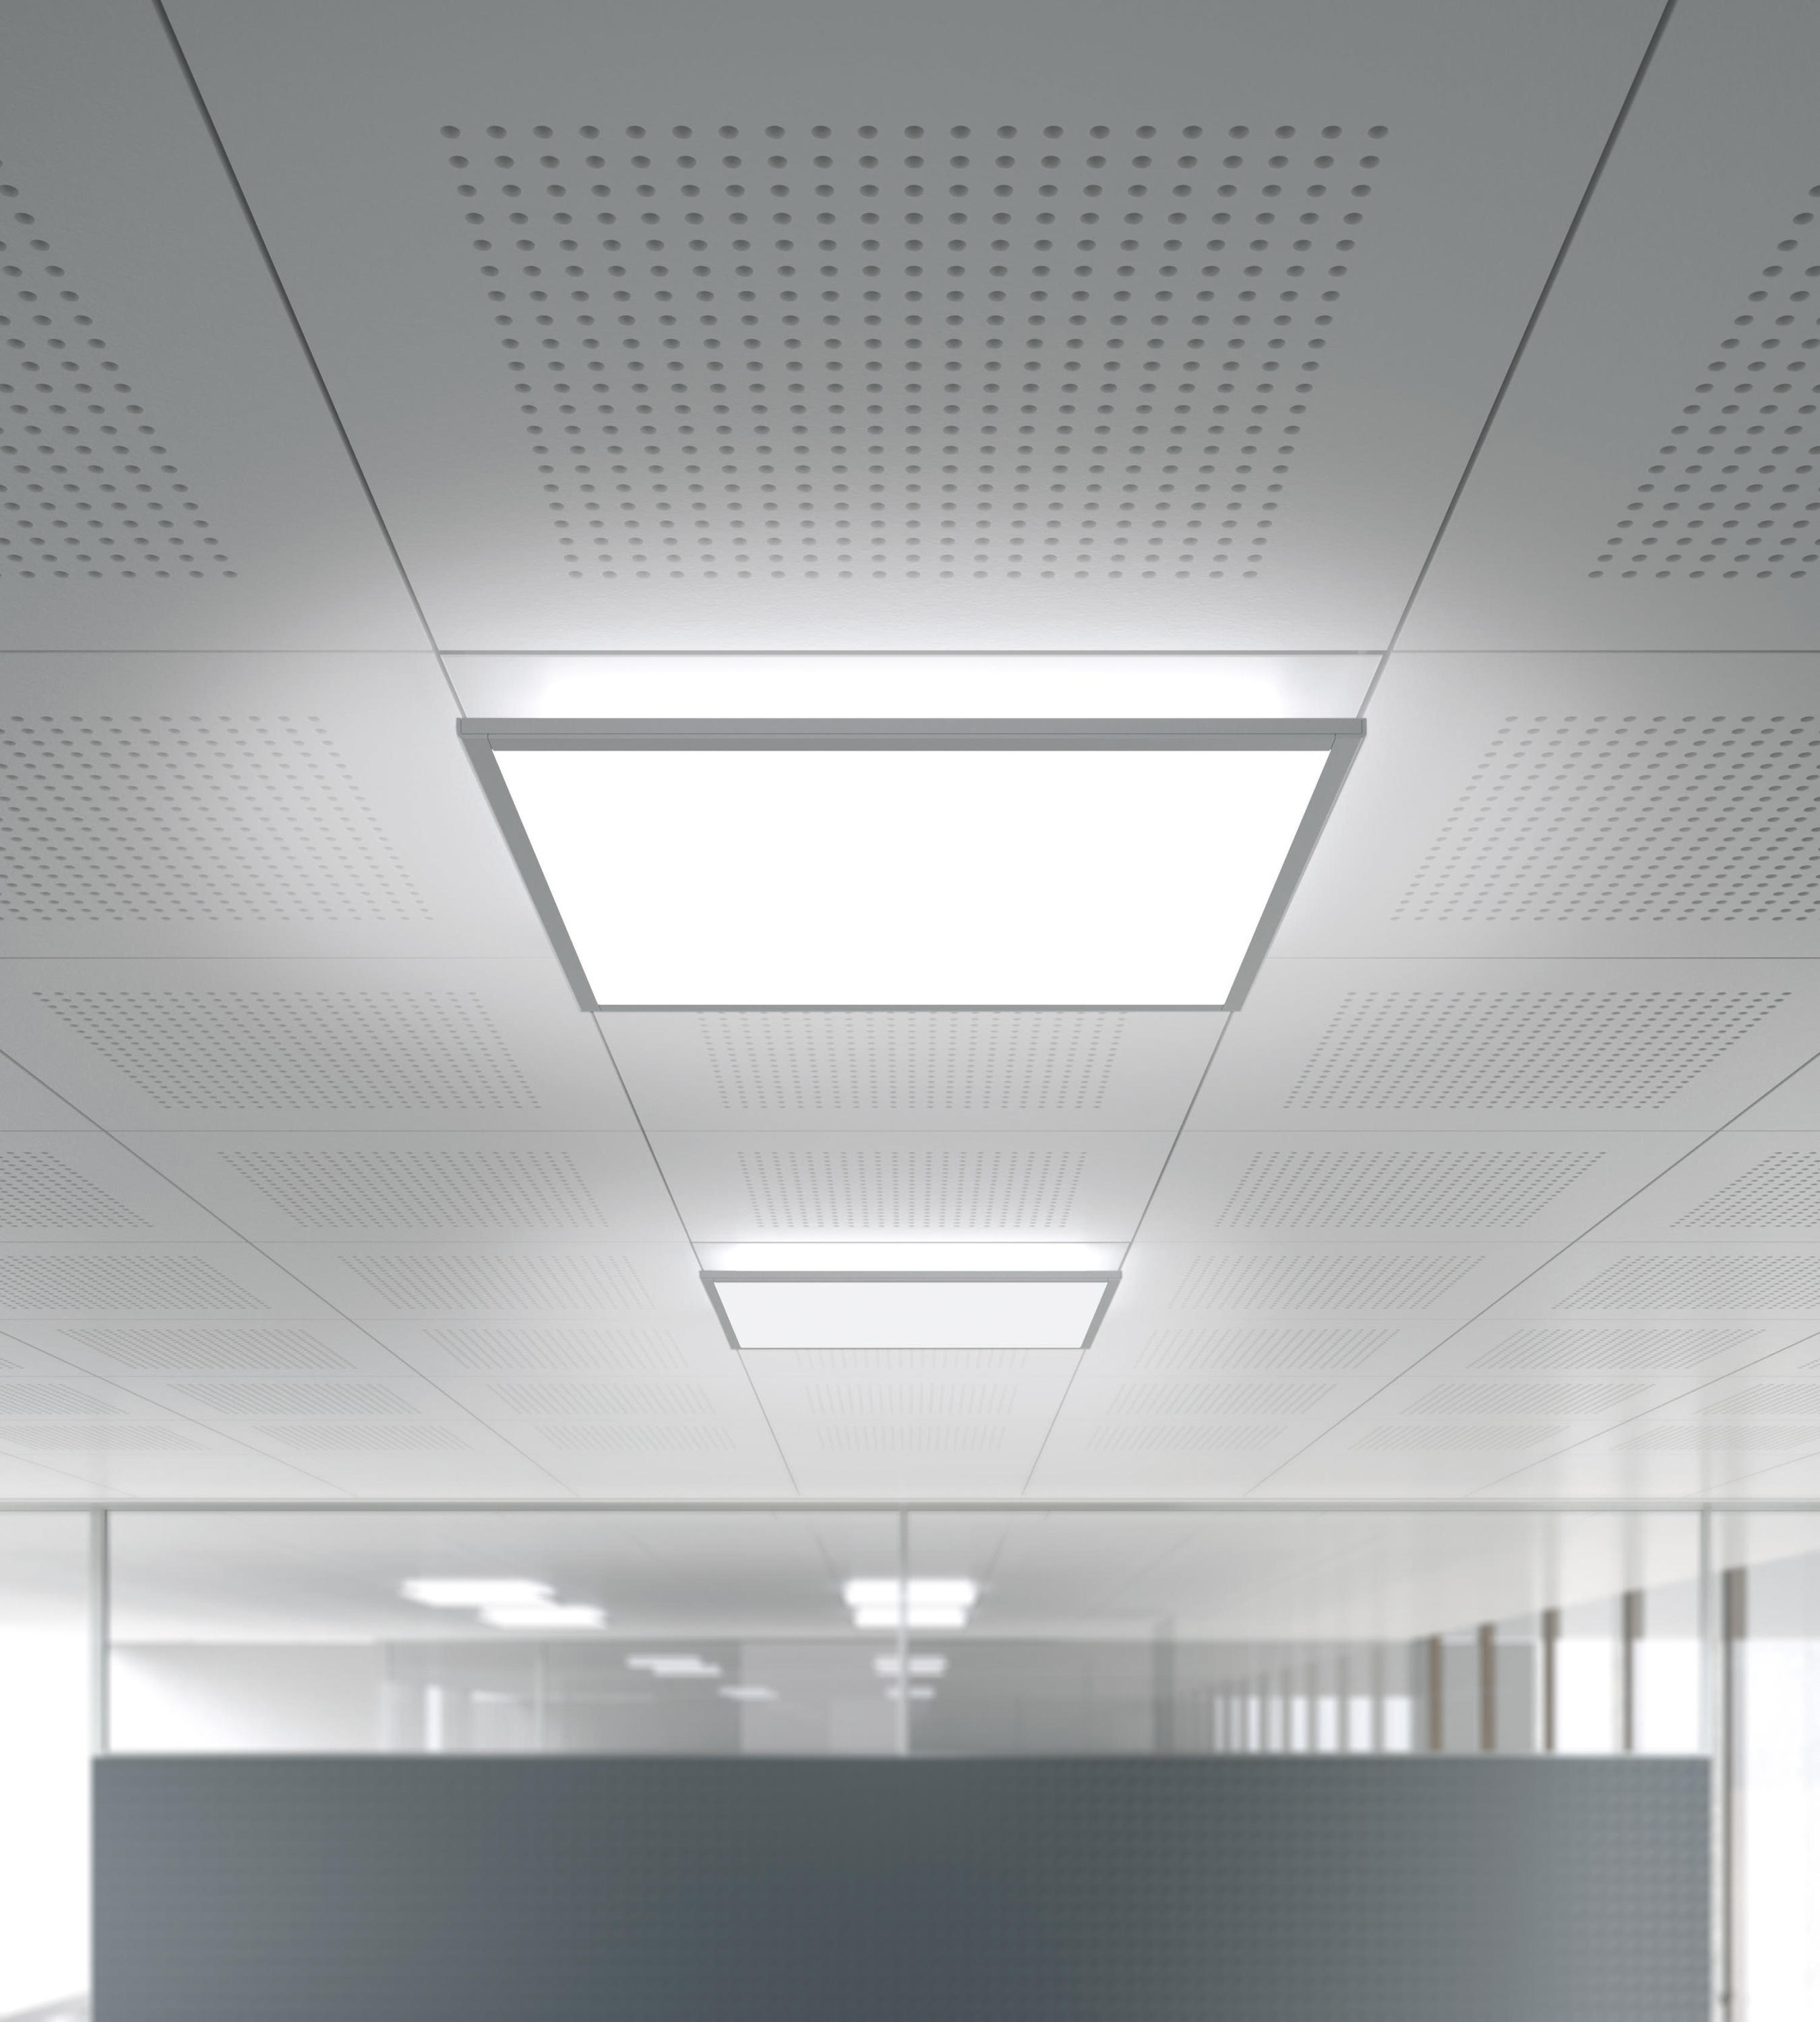 Luminaire Lighting Idoo Fit Recessed And Surface Mounted Luminaire Recessed Ceiling